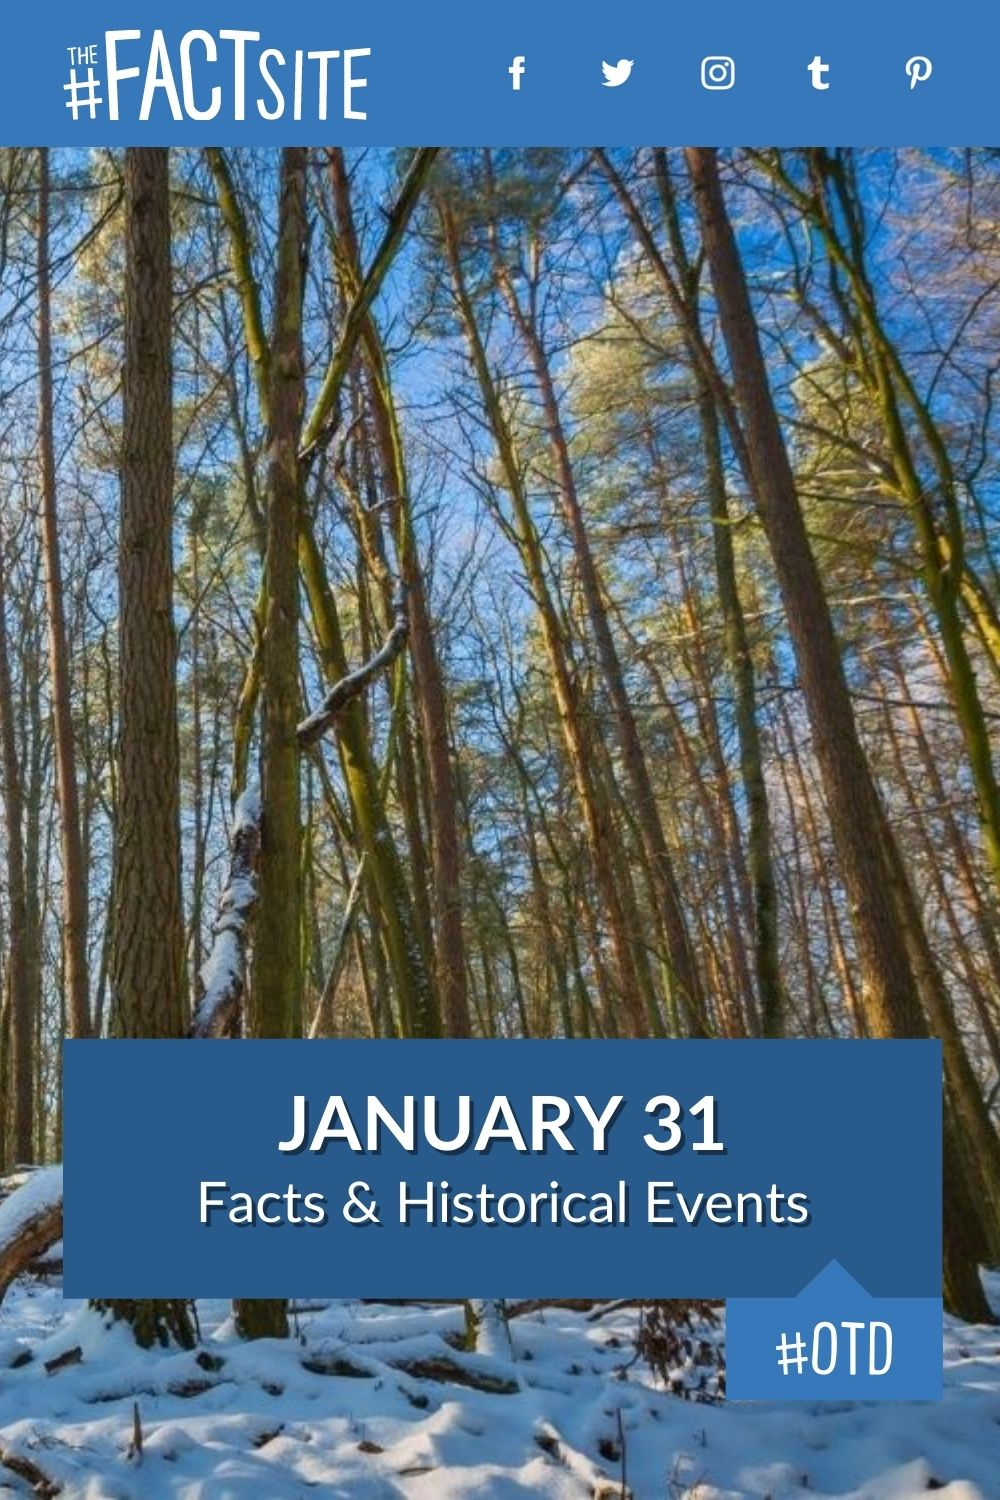 Facts & Historic Events That Happened on January 31